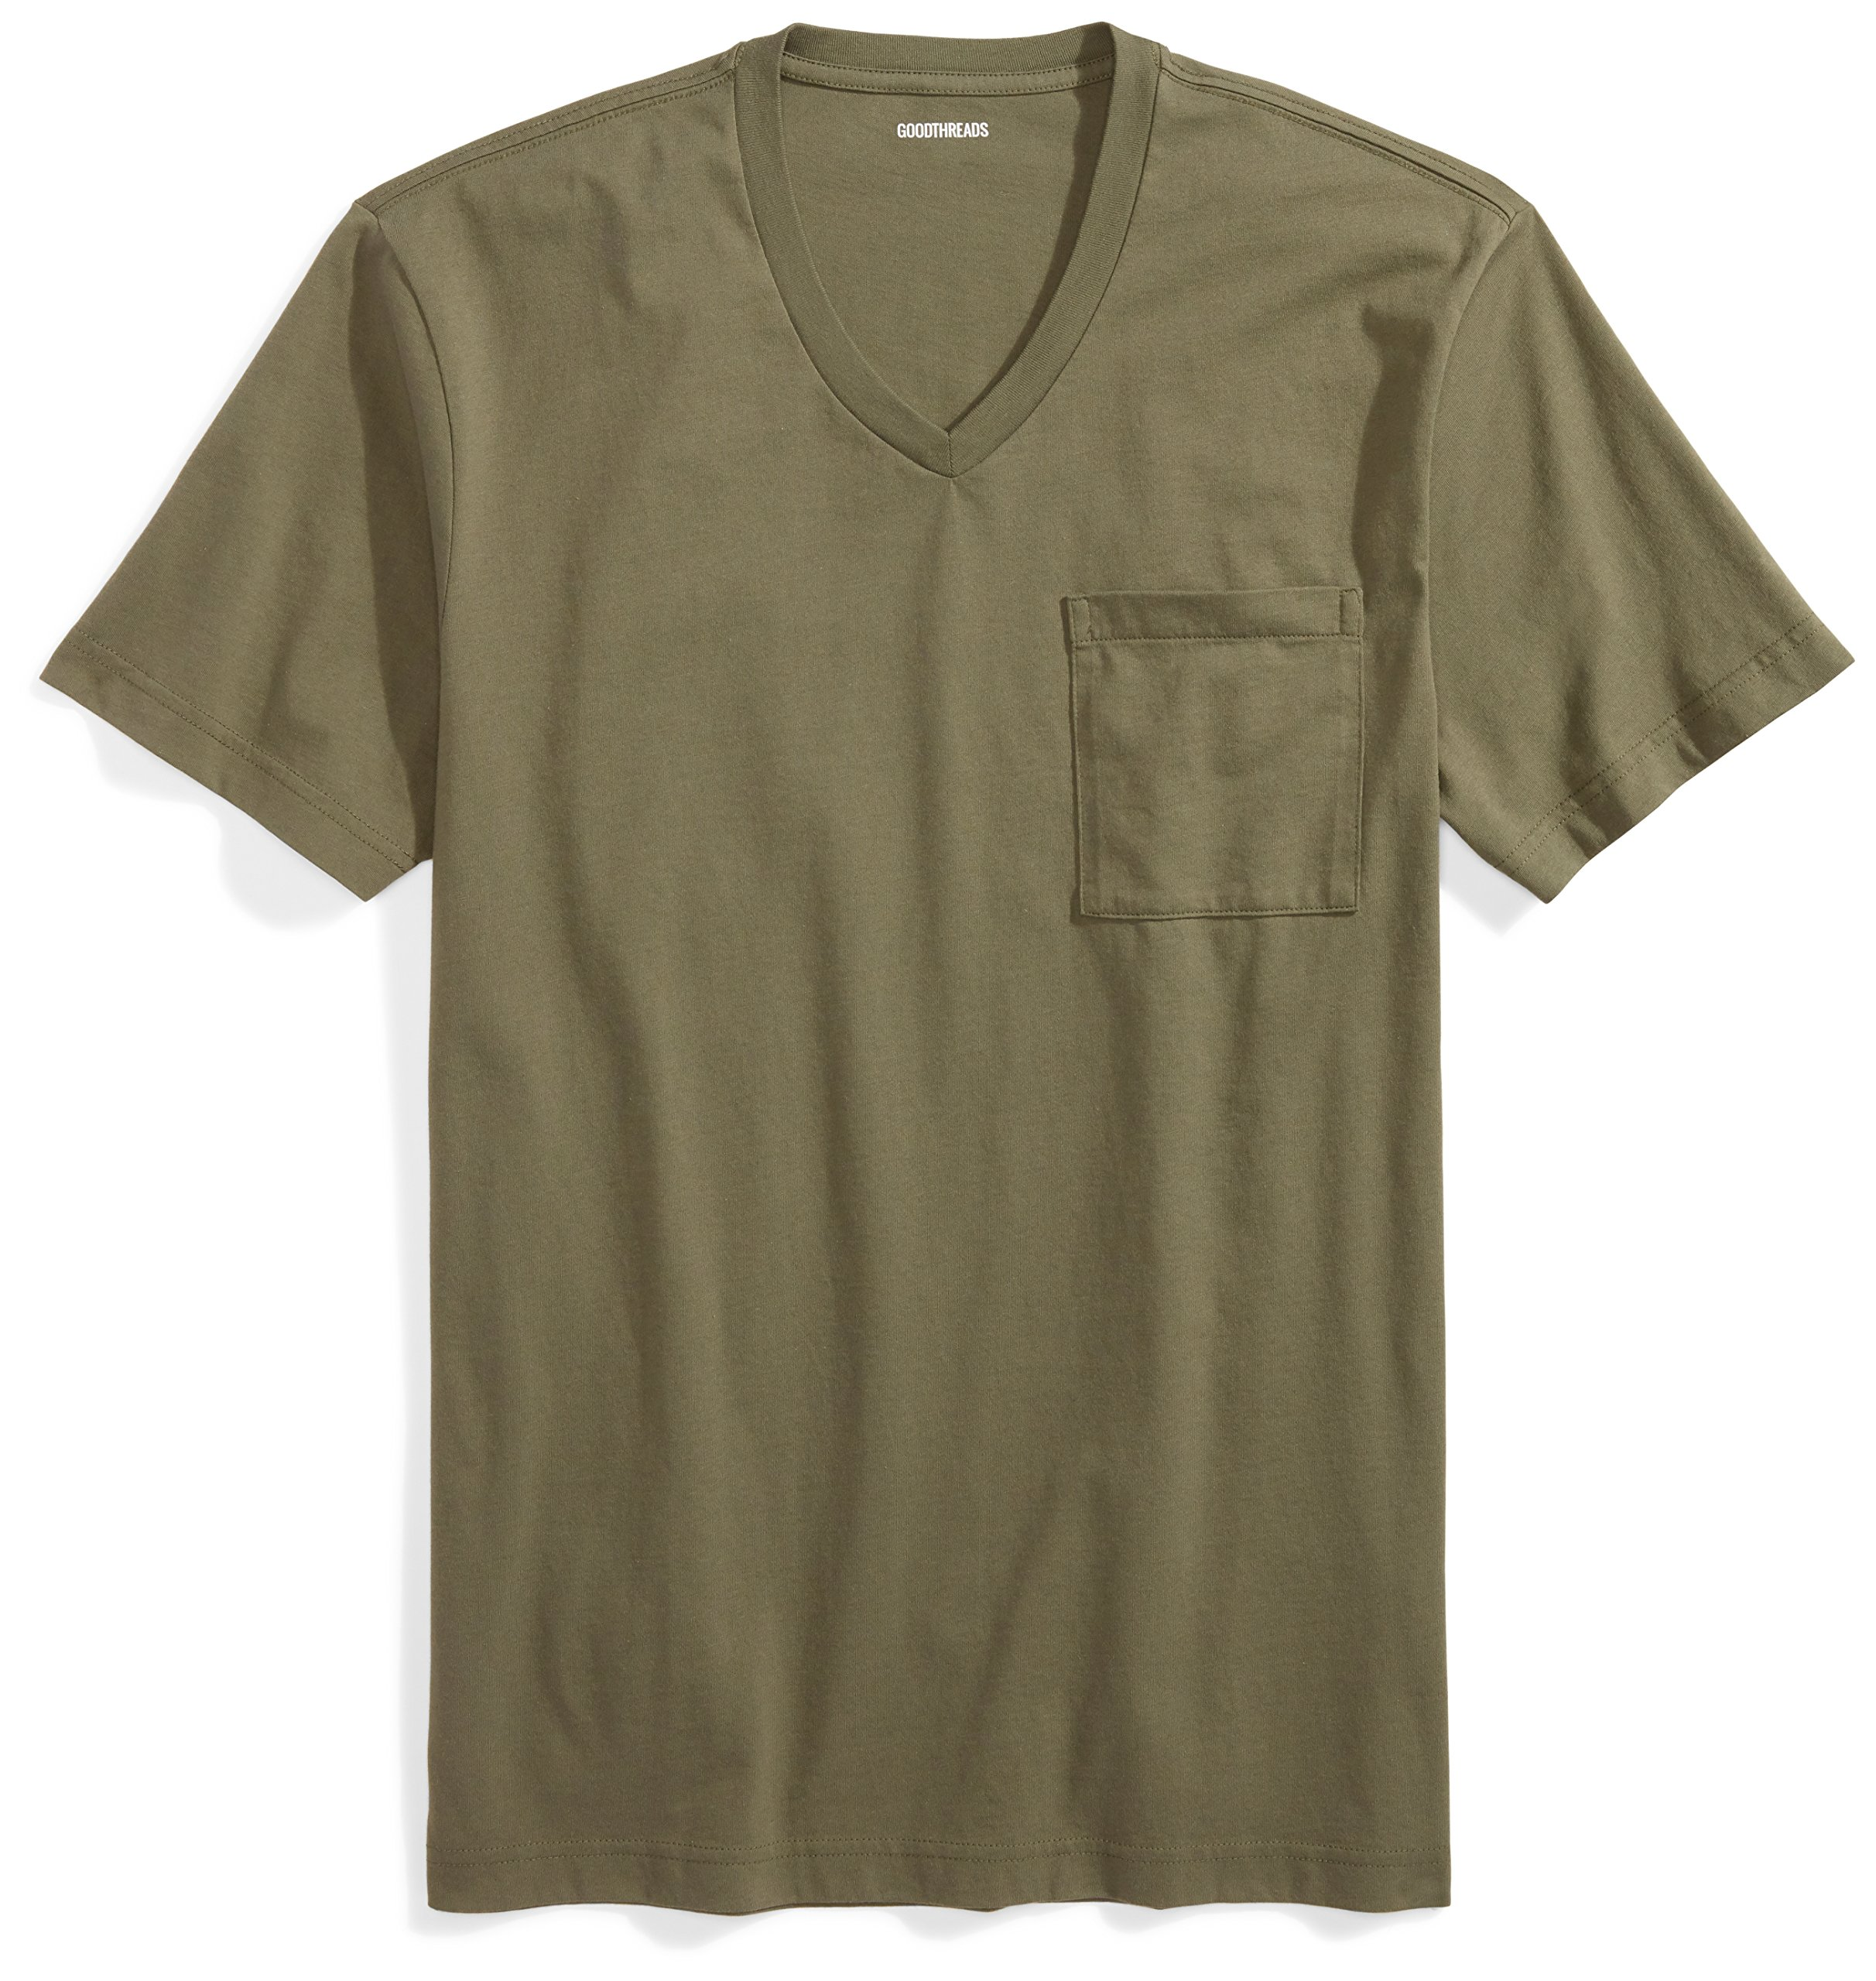 Goodthreads Men's Short-Sleeve V-Neck Cotton T-Shirt, Olive, Medium by Goodthreads